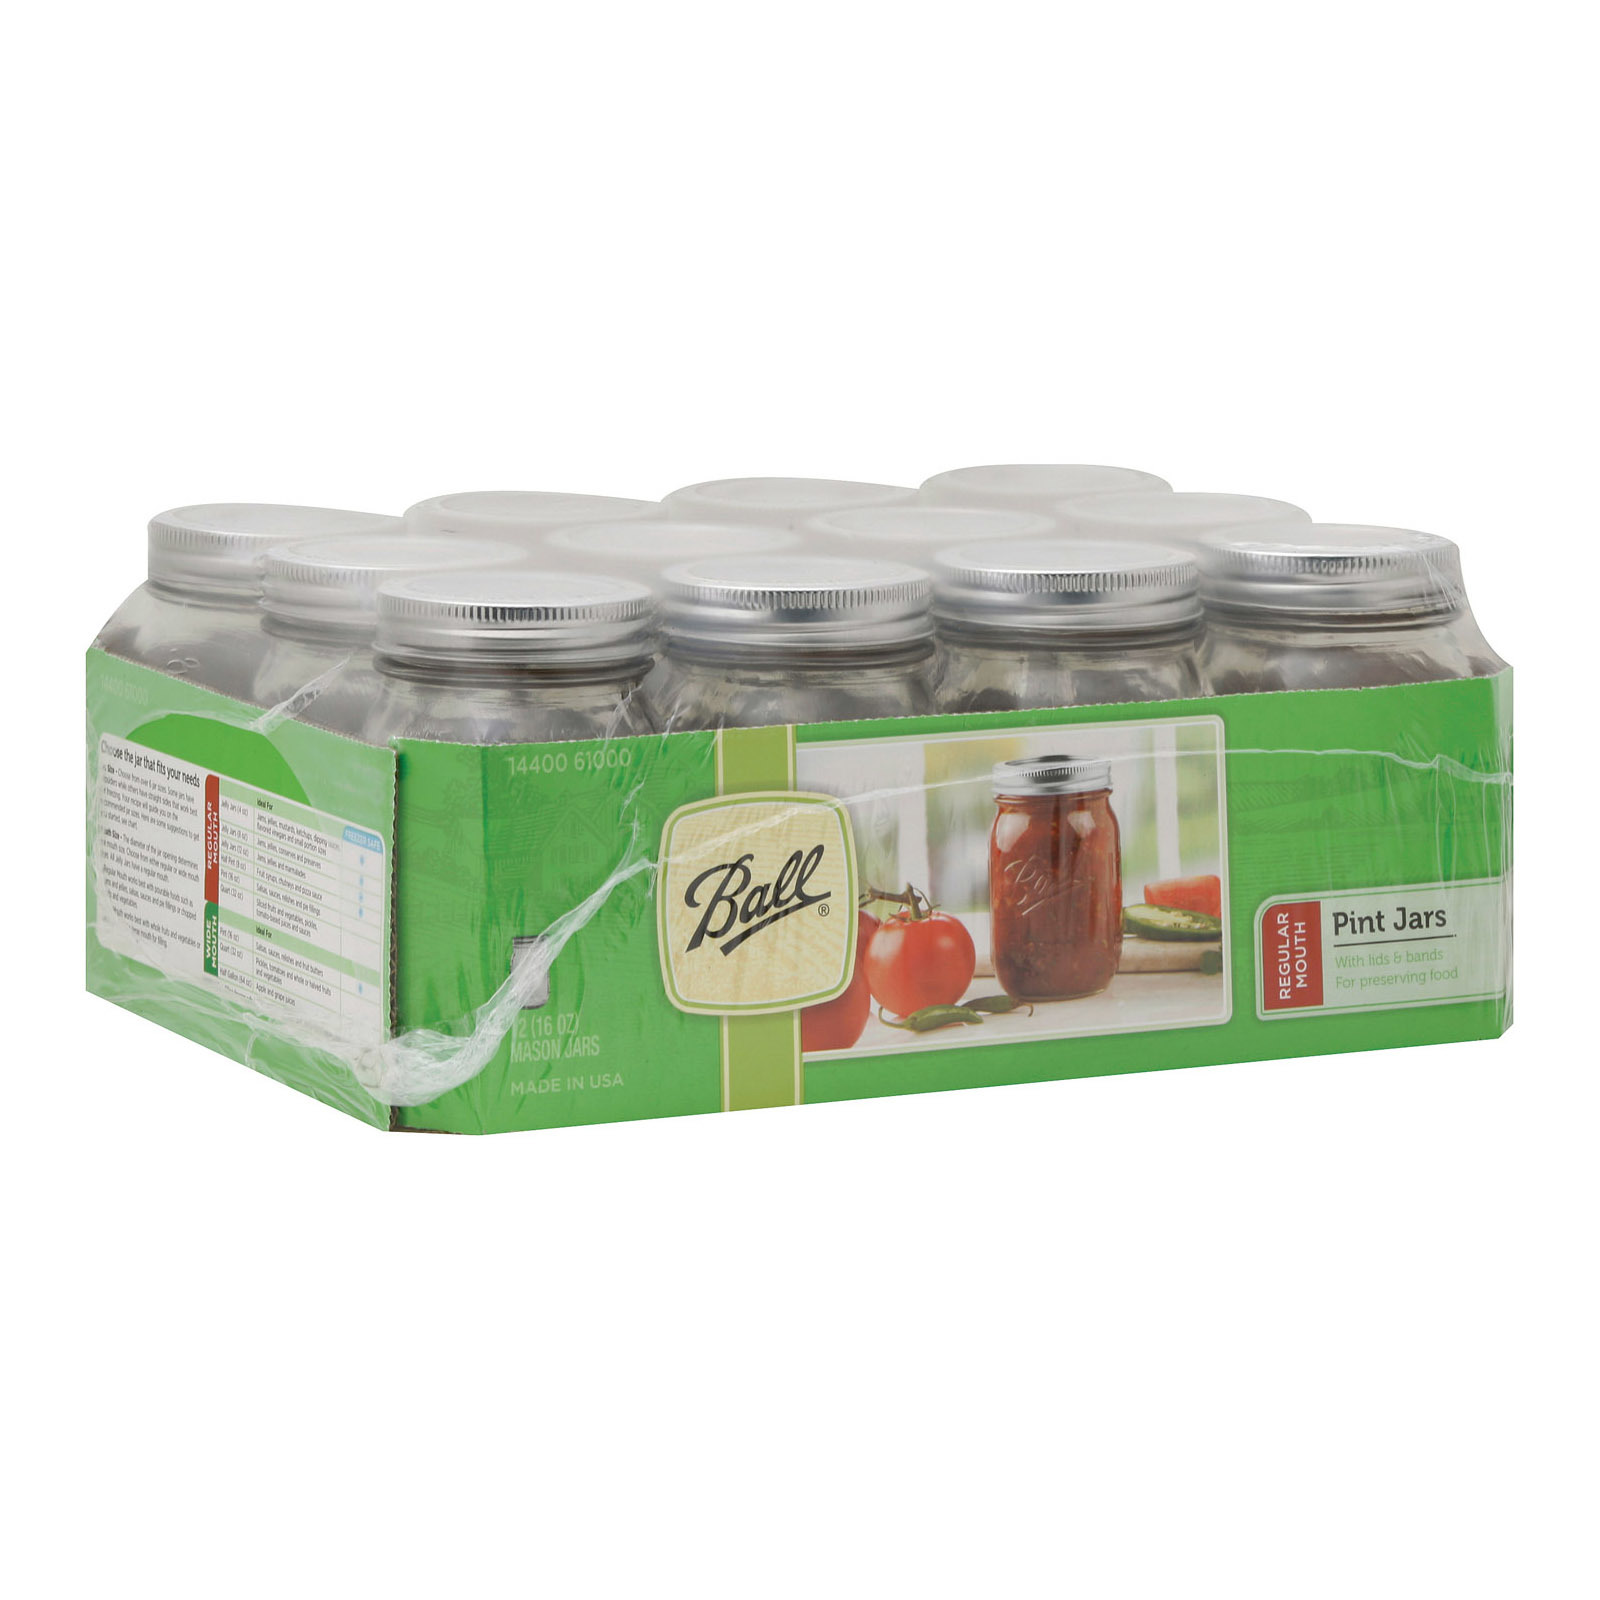 Ball Canning Mason Canning Jar Set - Case of 1 - 12 Count